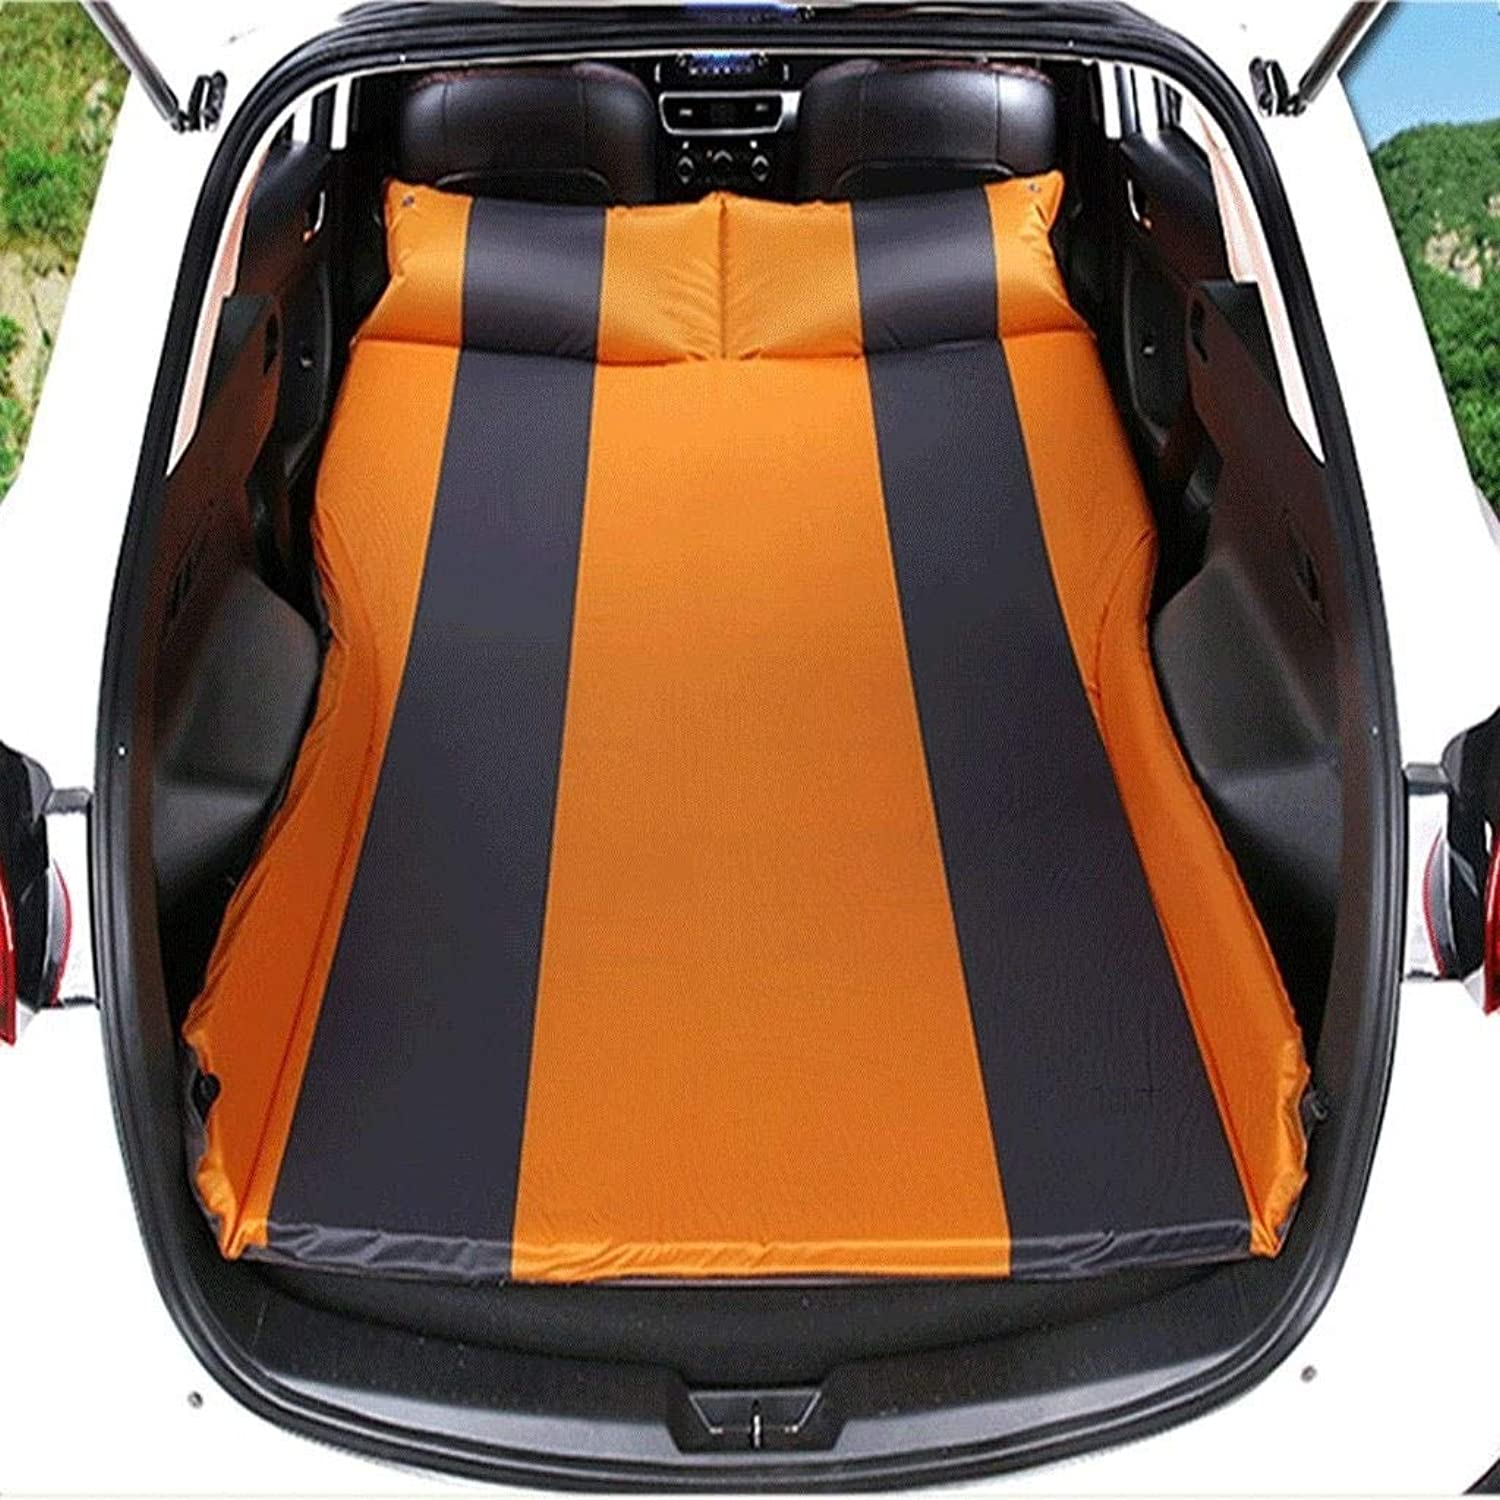 MUTANG Car Travel Inflatable Air Mattress Back Seat Portable Camping Bed Cushion with Back Support Fits Universal Car SUV with Travel Neck Pillow